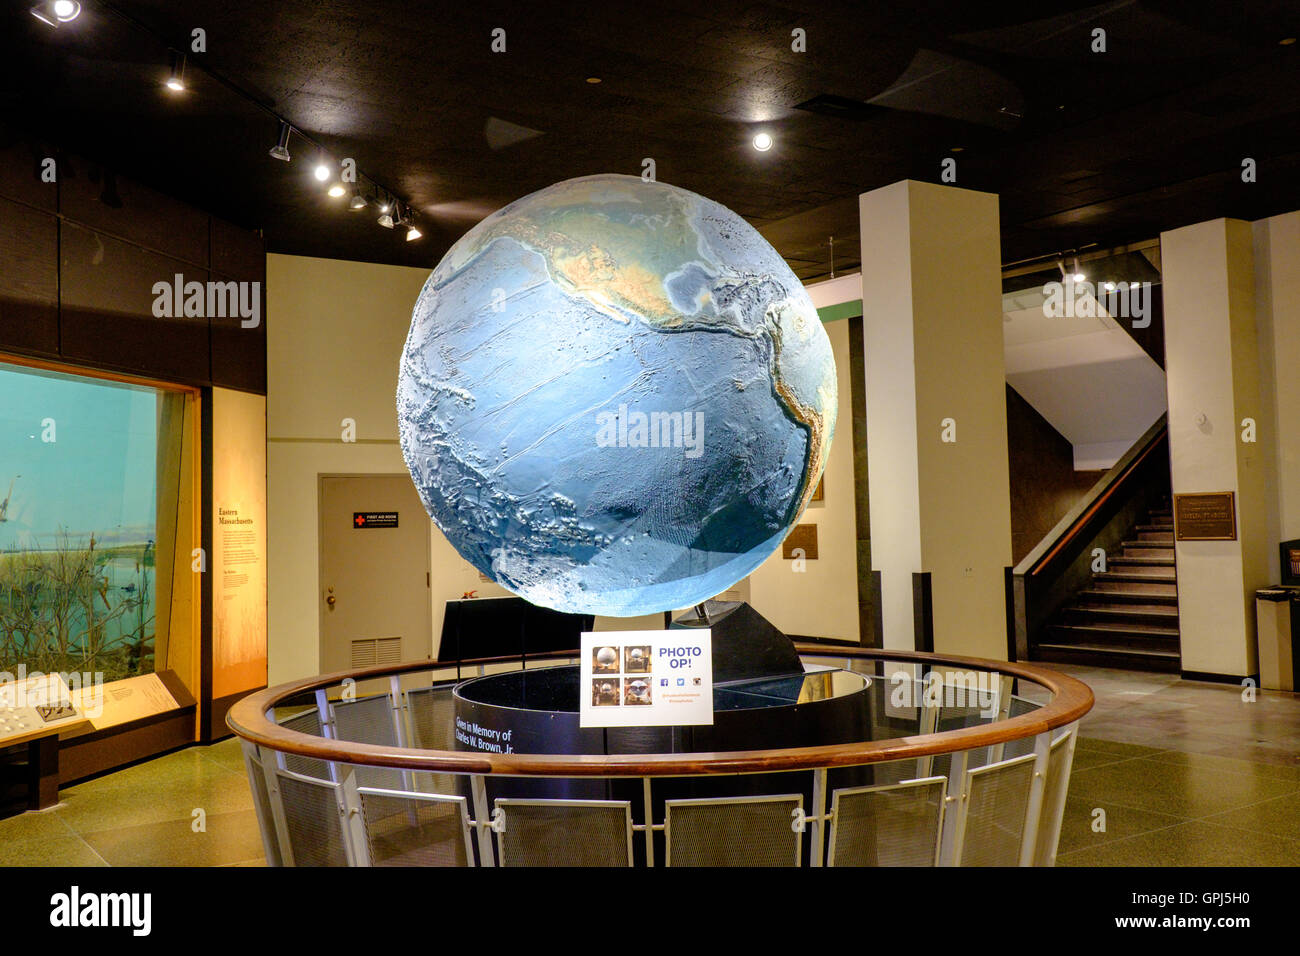 Earth globe in Museum of of Science Boston, USA - Stock Image